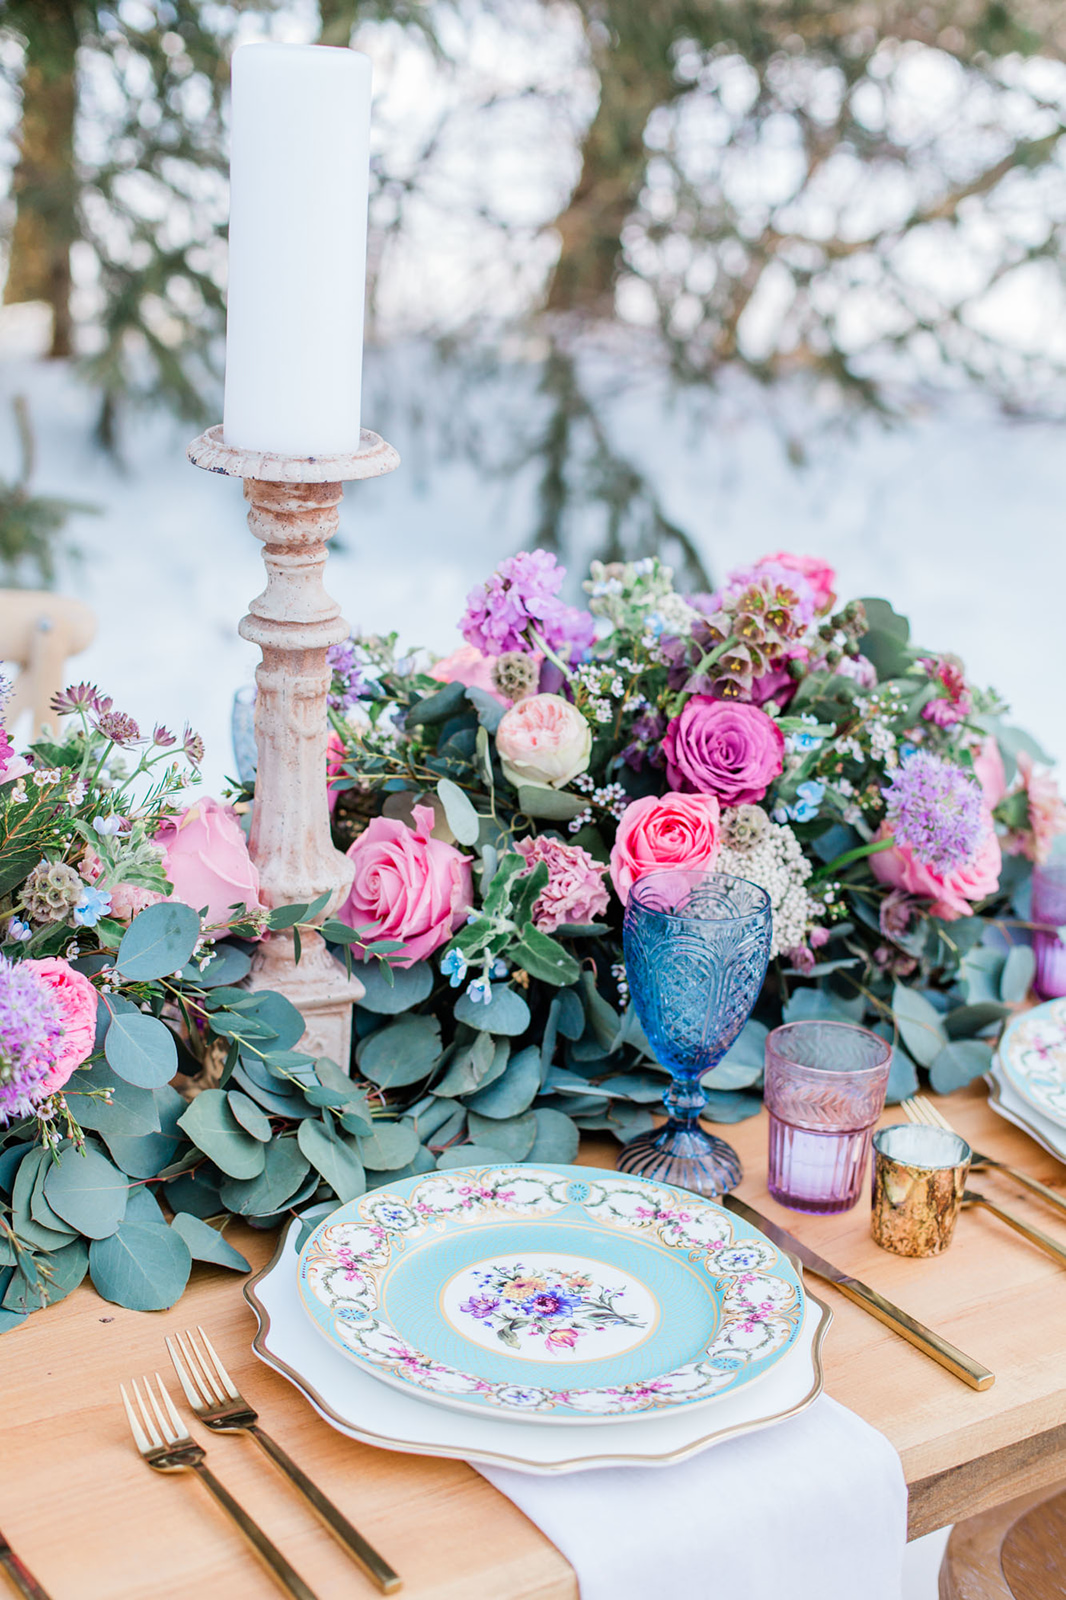 cool tone winter flower centerpiece outdoor table setting for wedding